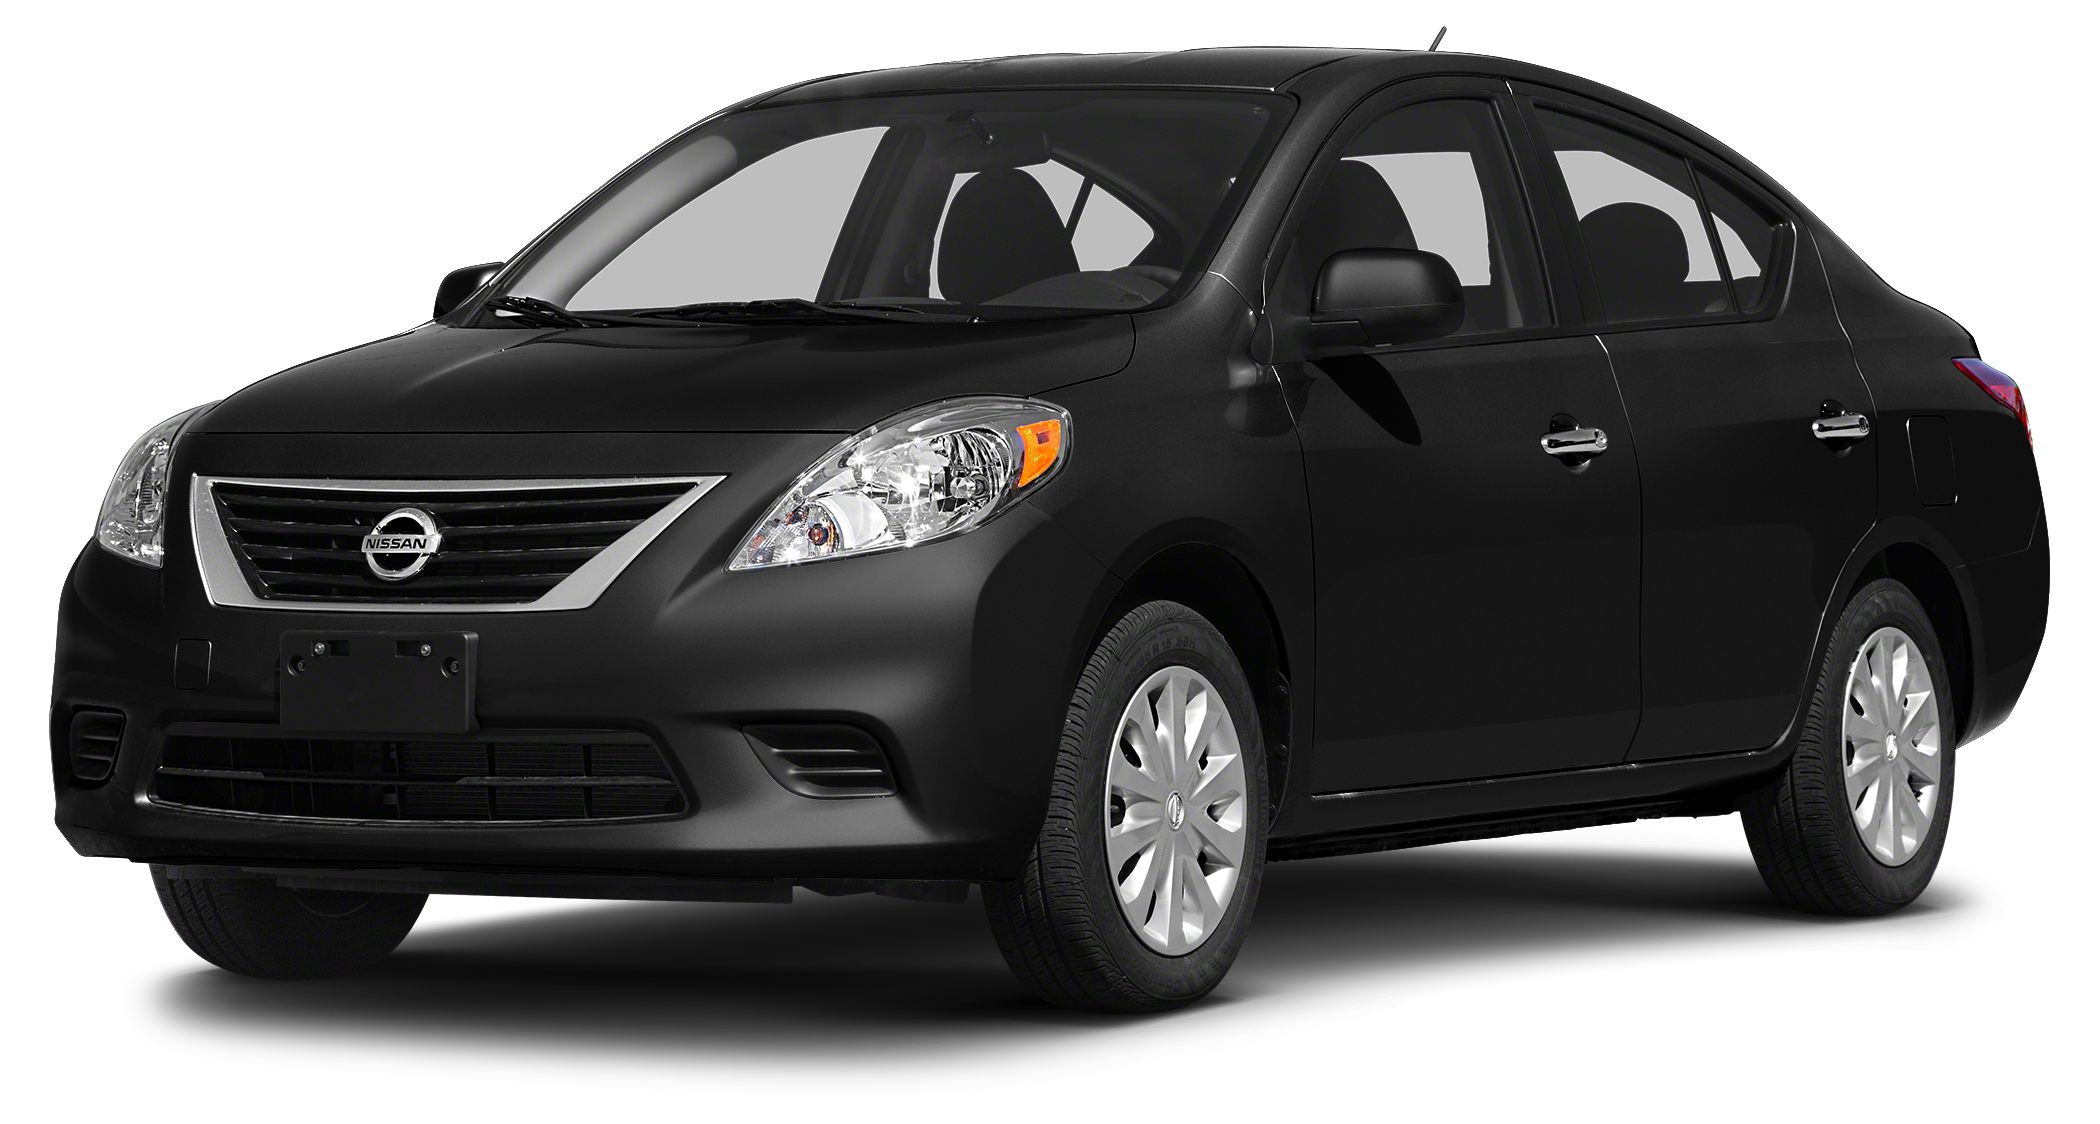 2014 Nissan Versa 16 S LOOKING FOR A DEAL LOOK NO FURTHER HERES THE PERFECT VERSA TO GET YOU